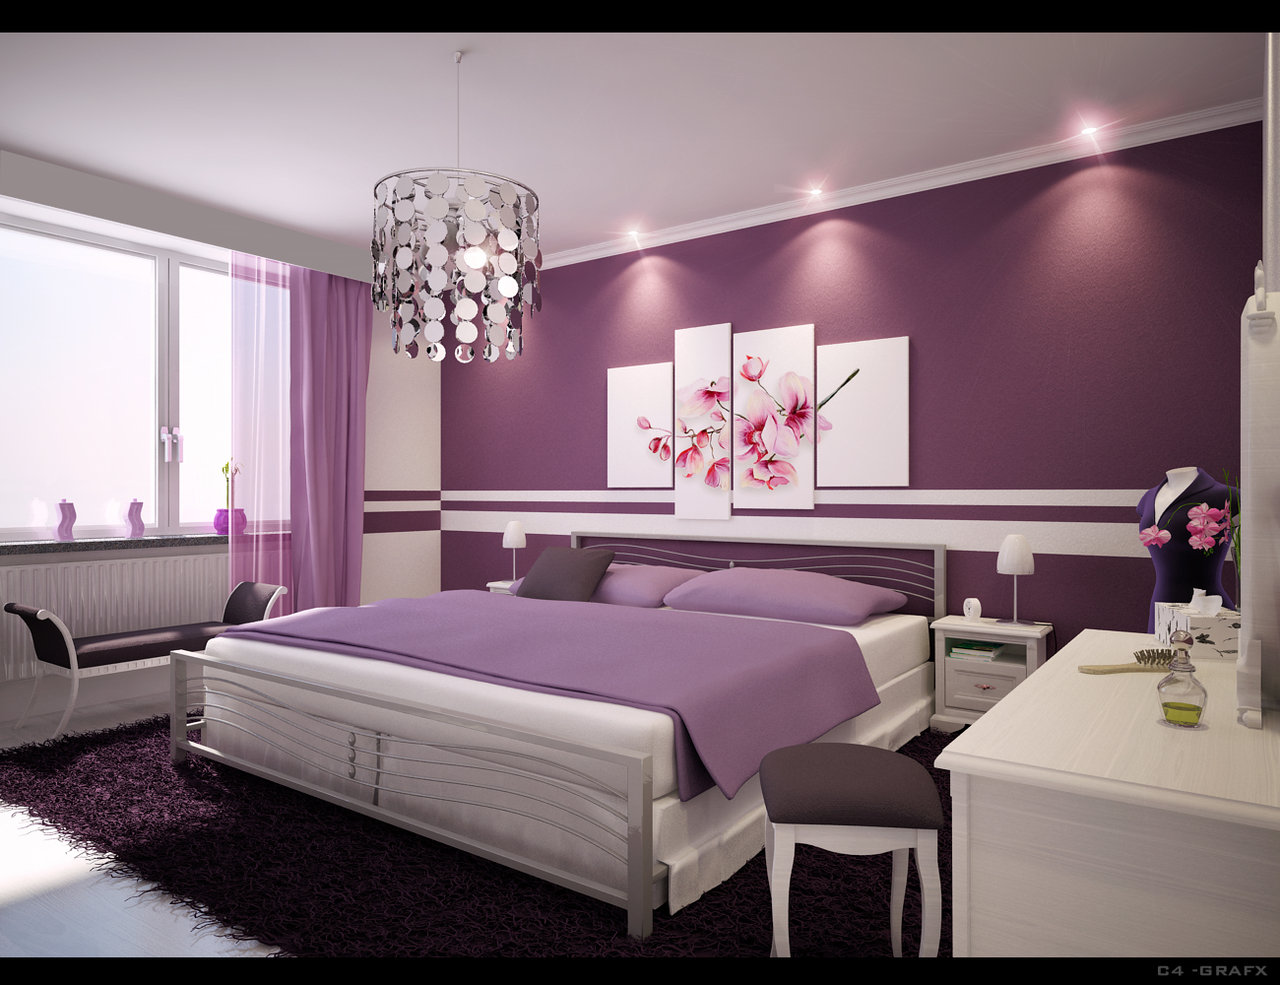 Bedrooms Designs Inspiration Of Purple Bedroom Design Ideas Images